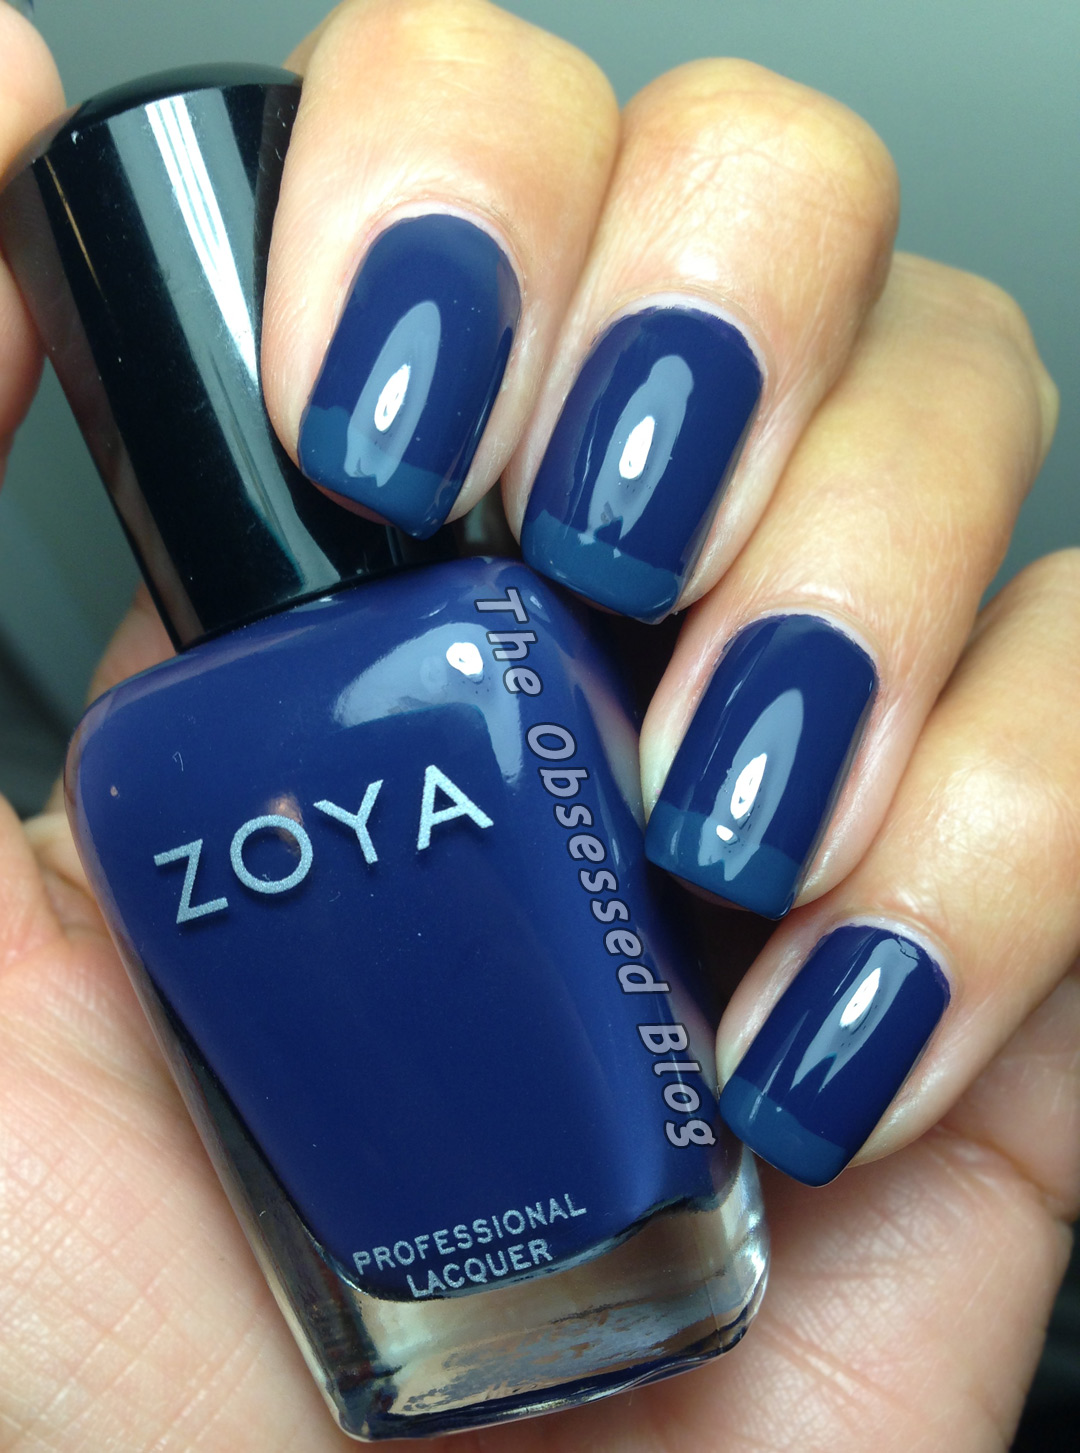 Zoya Sailor Because this was such a quick